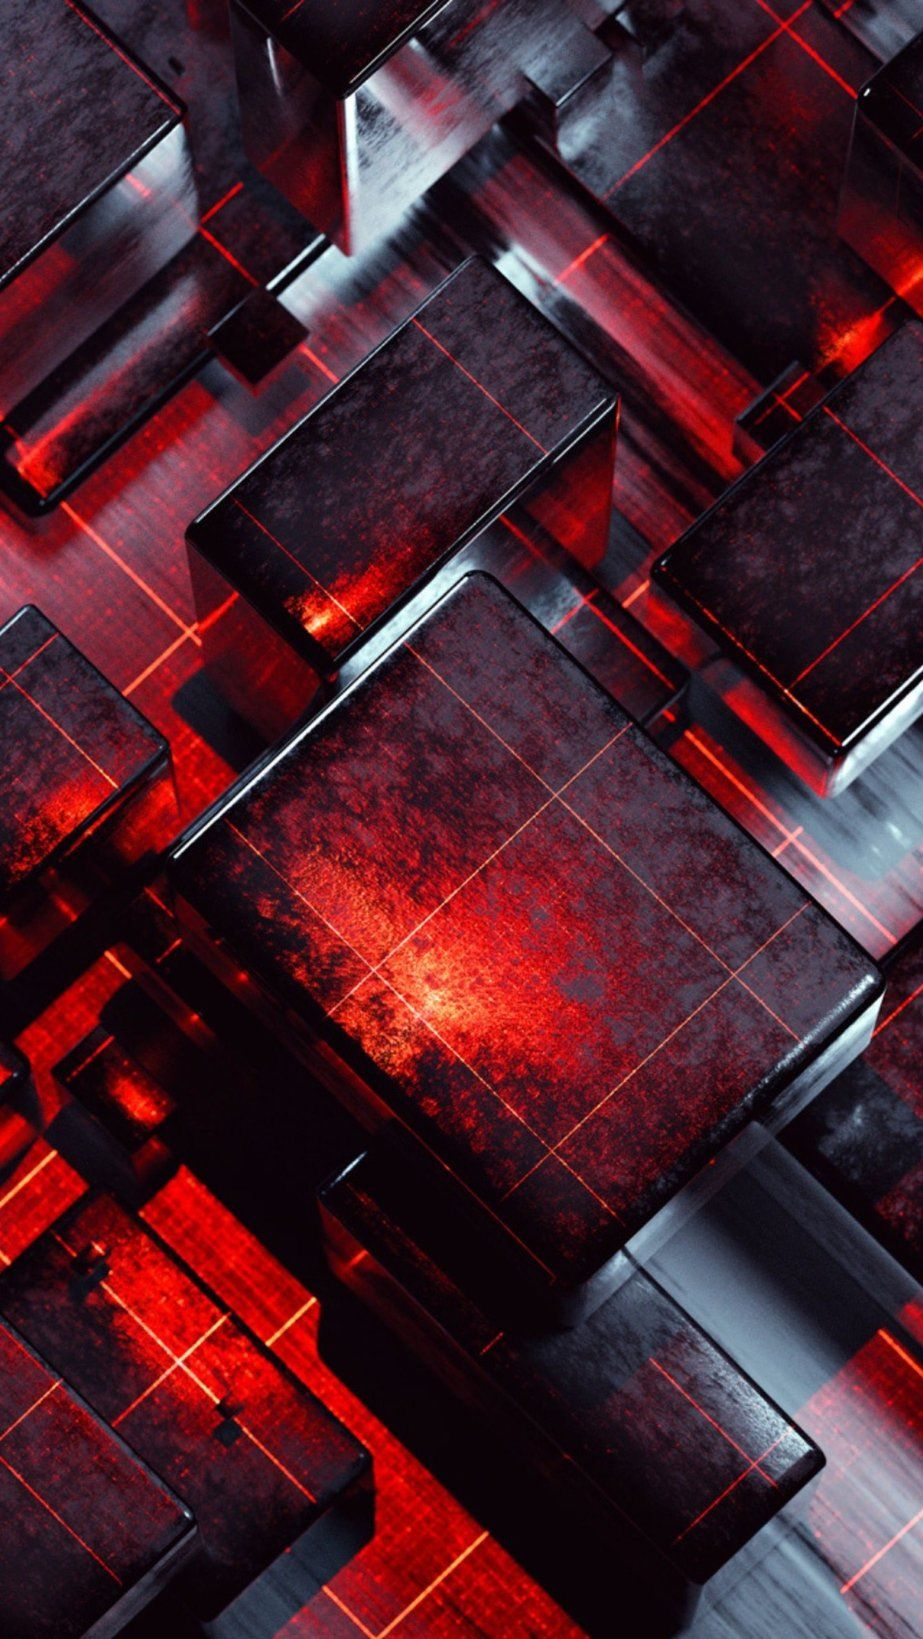 Black And Red Wallpapers Red Wallpaper Red And Black Wallpaper Phone Wallpaper Design